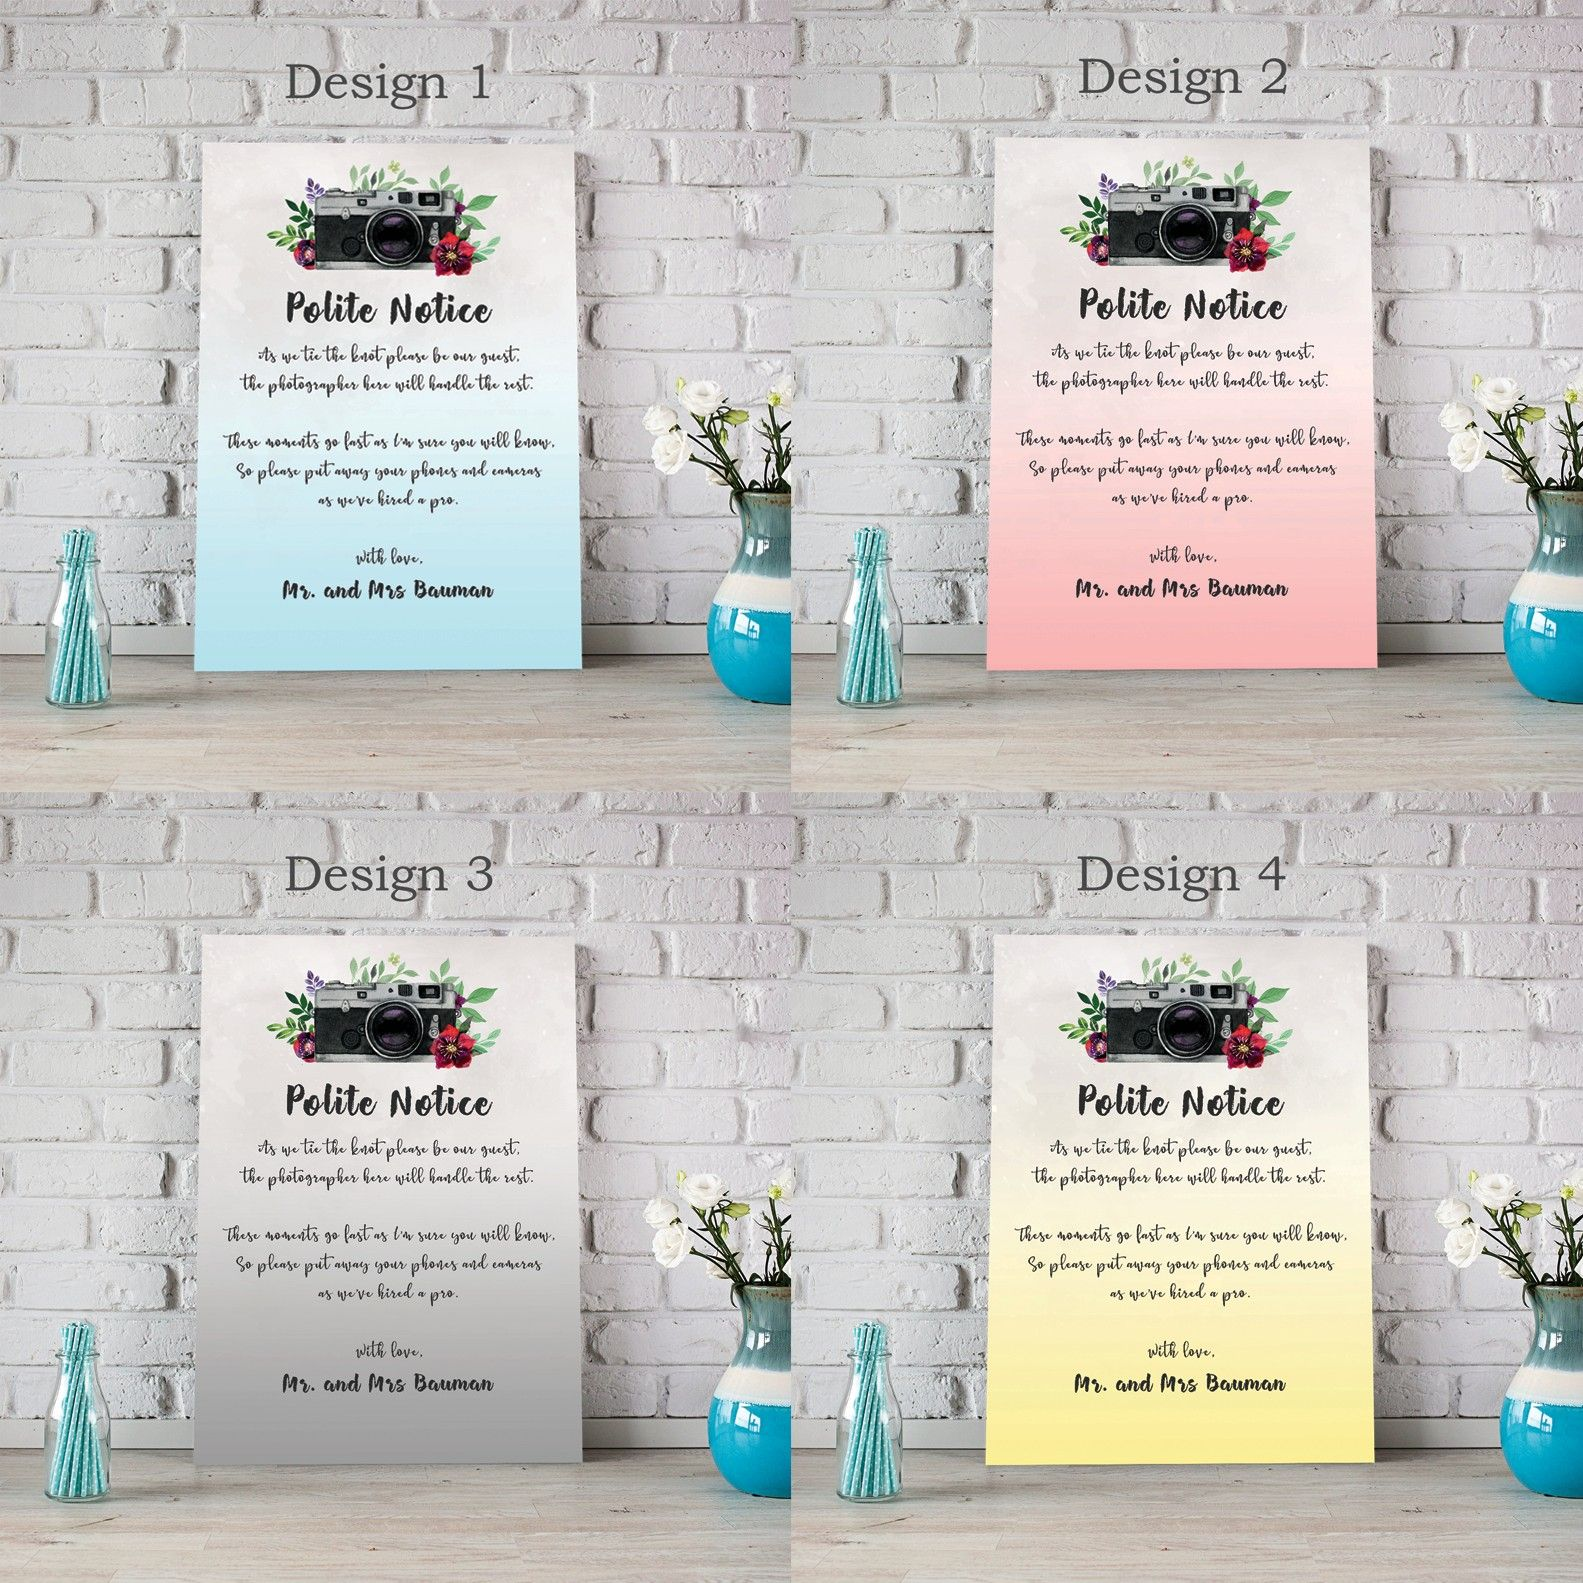 Wedding Polite Notice For Phones and Cameras Unplugged Wedding Ceremony Polite Notice  Personalised Wedding Polite Notice For Phones and Cameras Unplugged Wedding Ceremon...